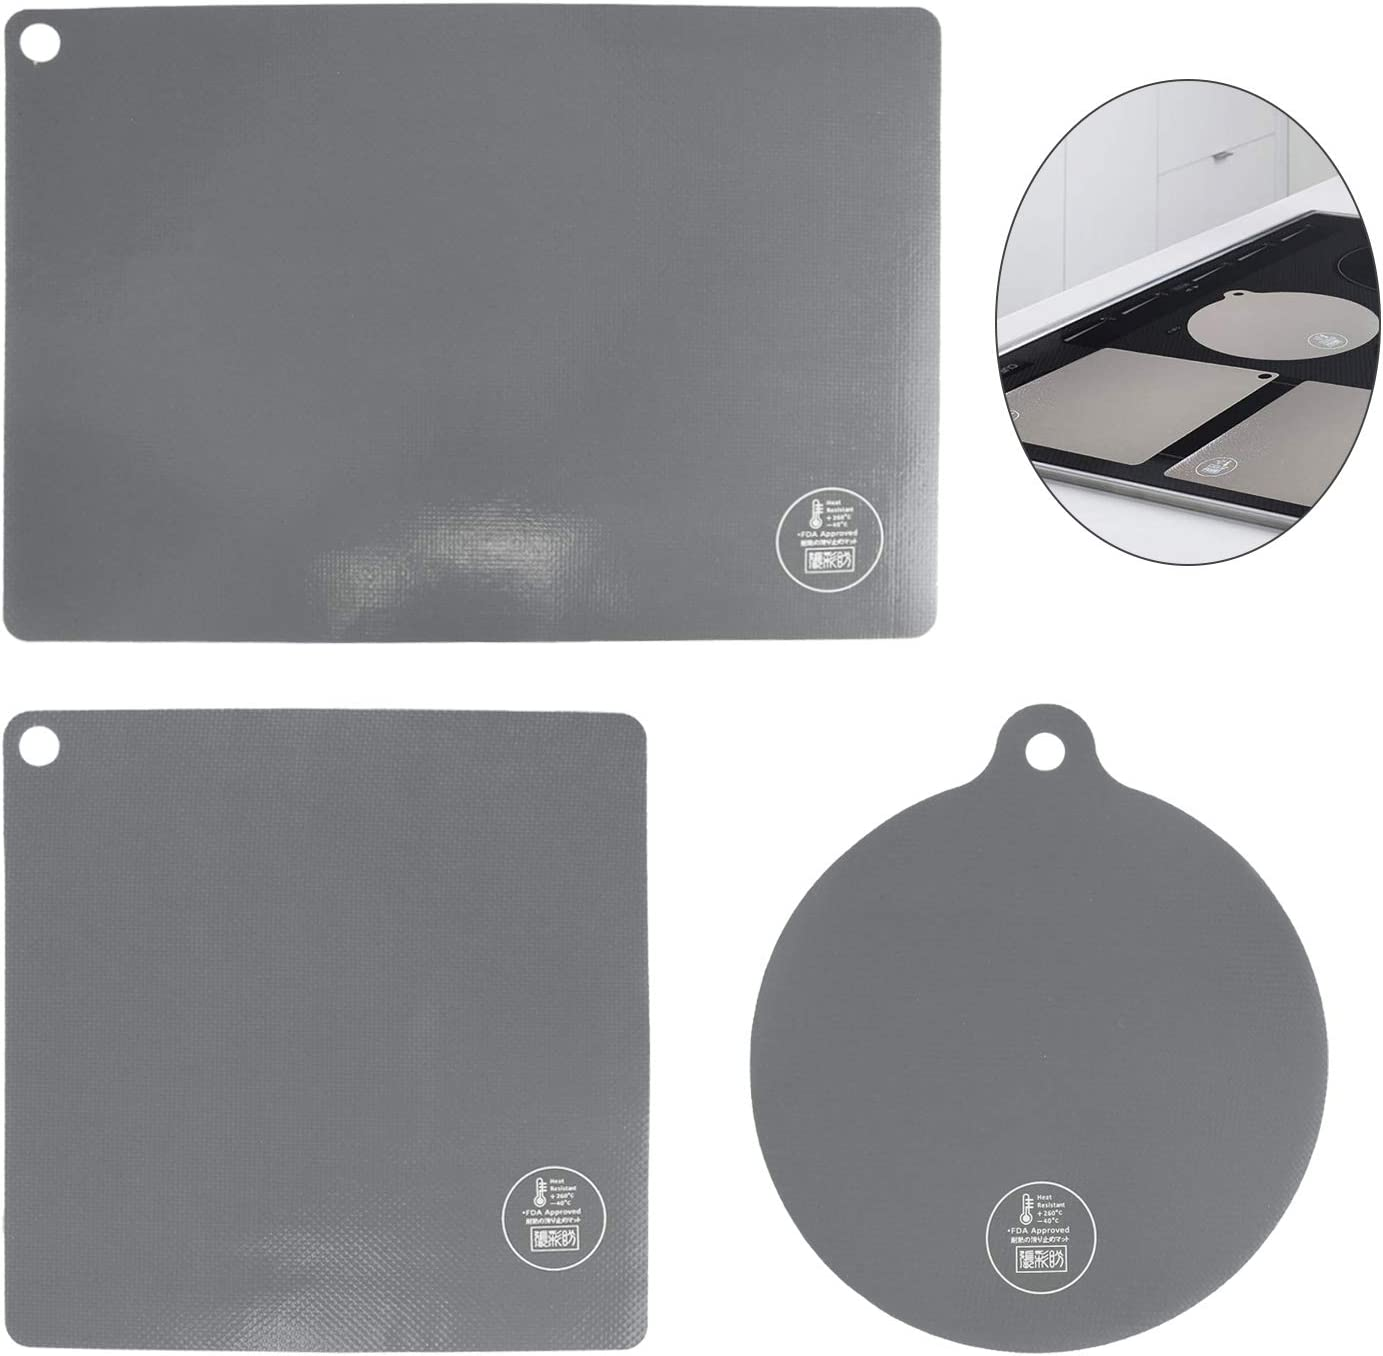 3 Pack Electric Induction Cooktop Protector Mat Set, Silicone Cook Top Scratch Protector Cover for Countertop Burner Cooker Stove Range